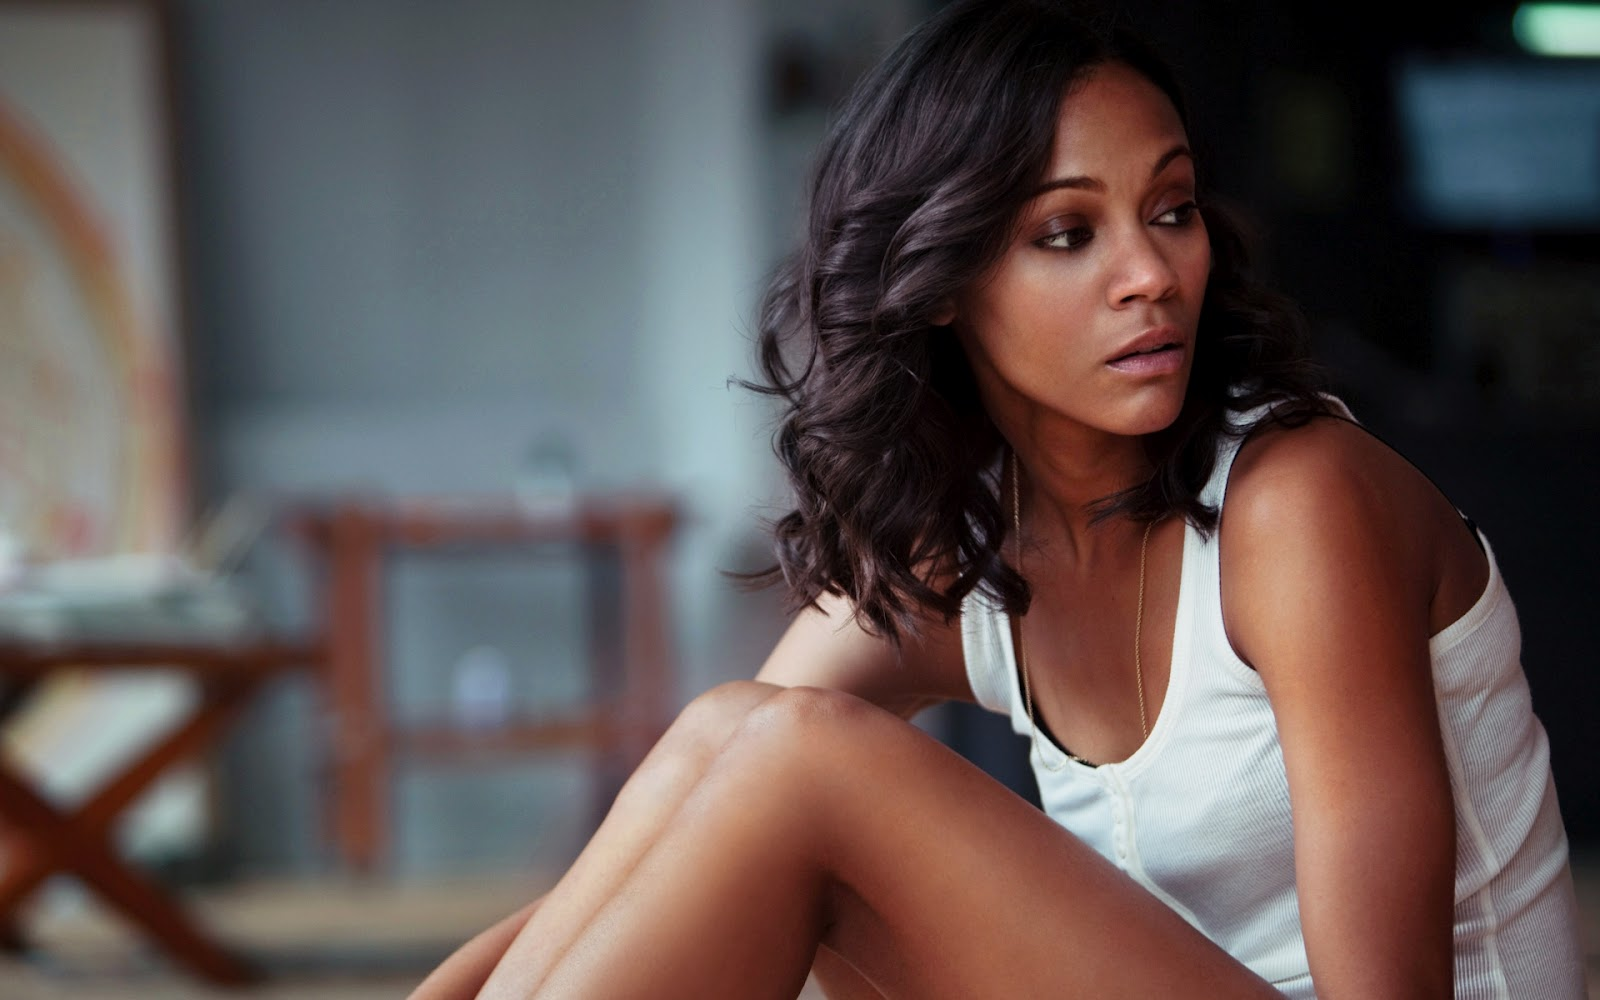 Zoe saldana free wallpapers zoe saldana wallpapers - Zoe wallpaper ...